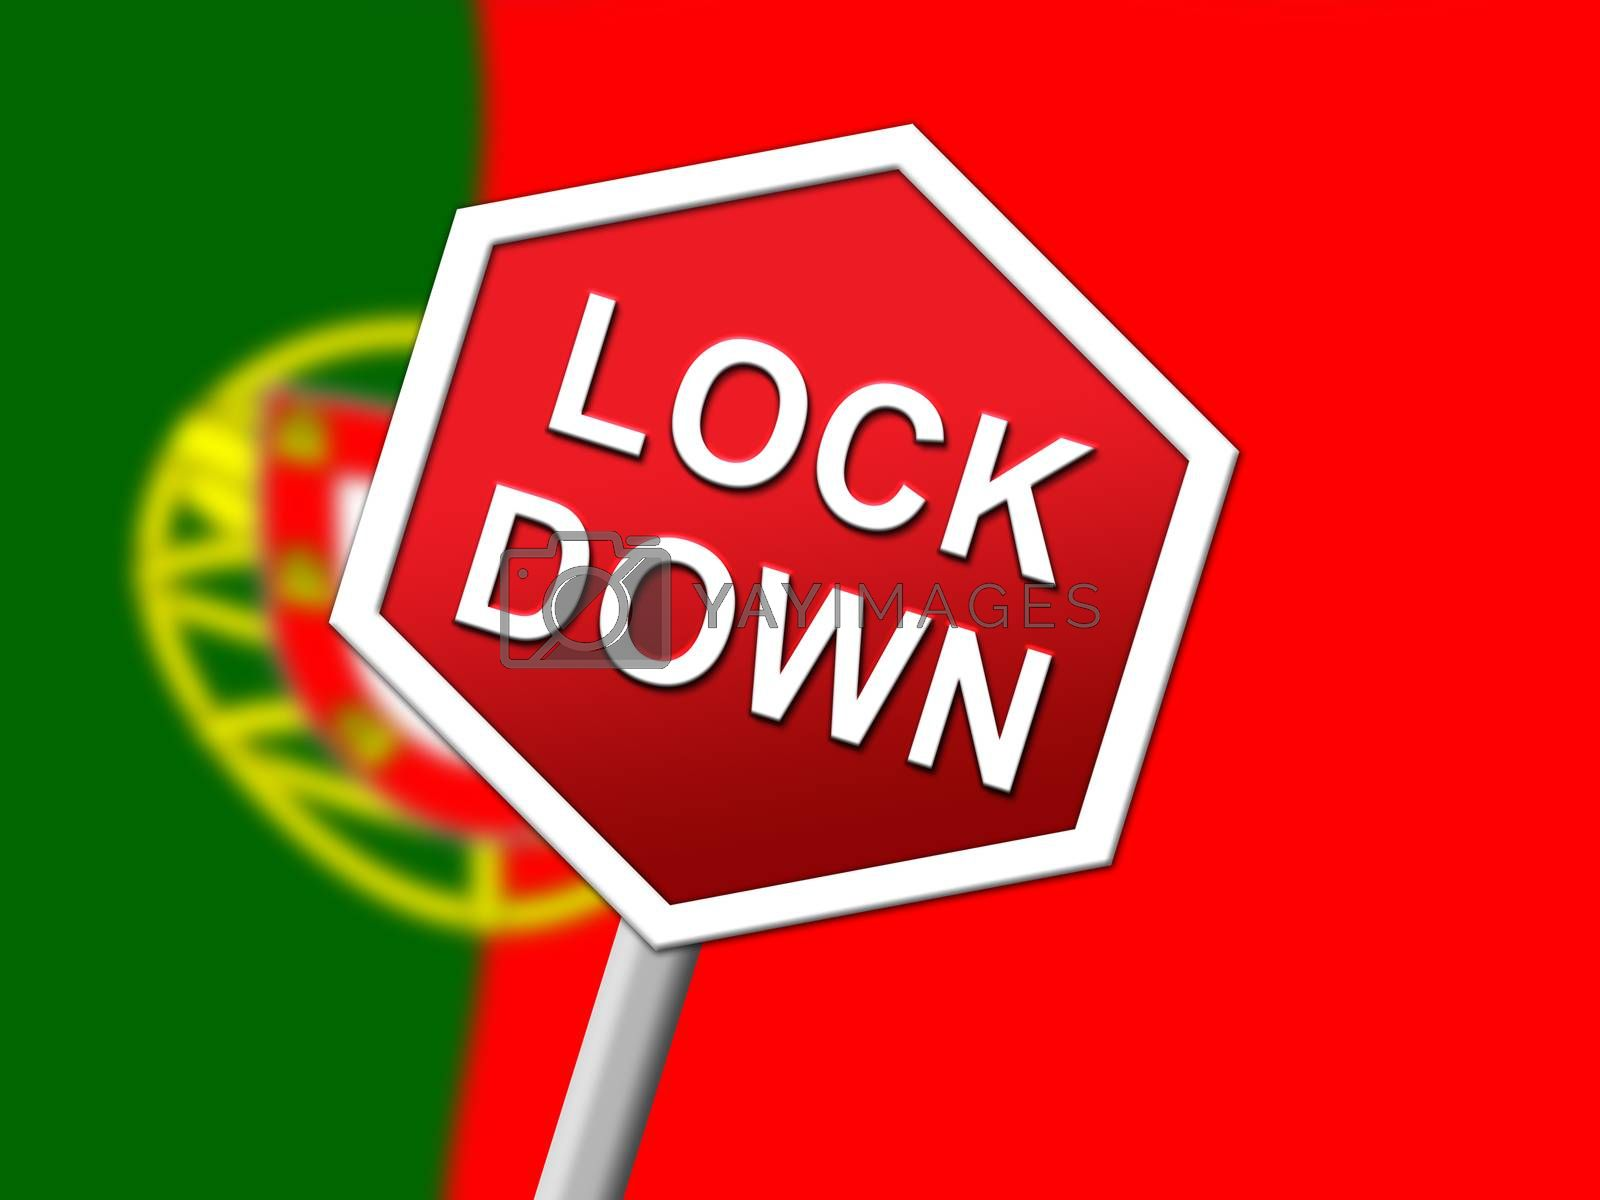 Portugal lockdown sign in solitary confinement or stay home - 3d by stuartmiles